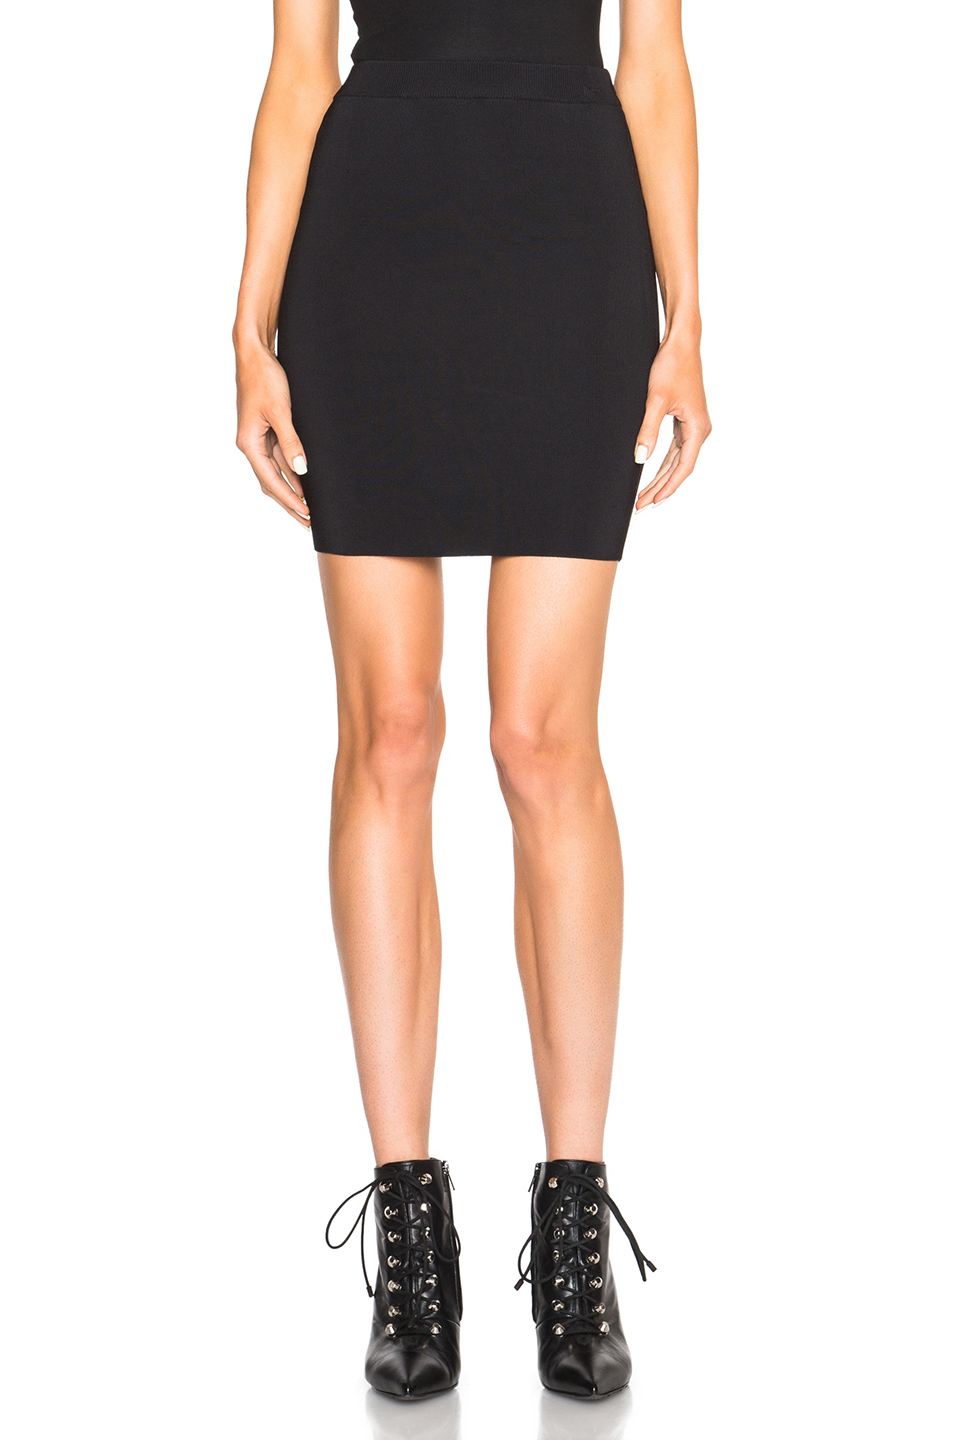 COMFORT - This Pencil Skirts for women is 2% Spandex on all Scuba Pencil Skirt Midi Bodycon Skirt Below Knee Skirt, Office Skirt High Waist. by Simlu. $ - $ $ 16 $ 25 99 Prime. FREE Shipping on eligible orders. Some sizes/colors are Prime eligible. out of 5 stars